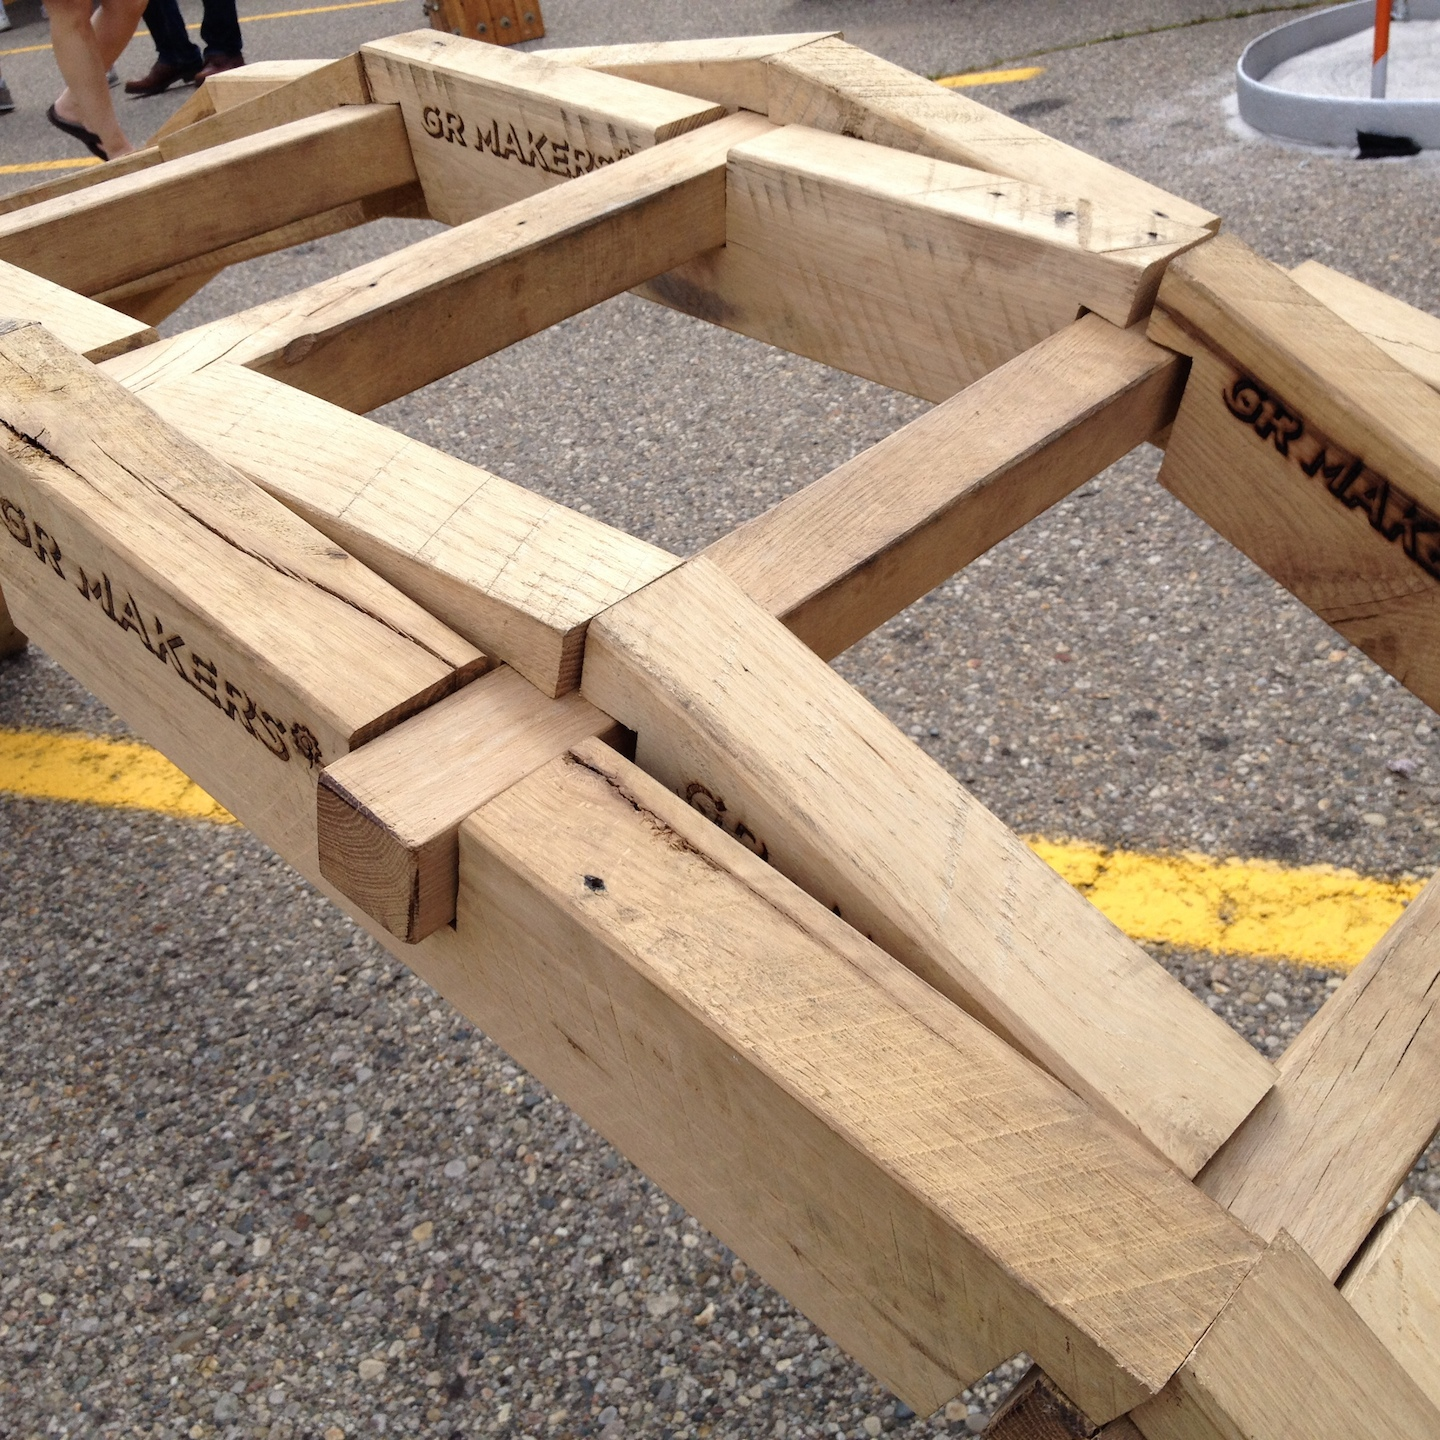 5 Reasons Why We Go to Maker Faire